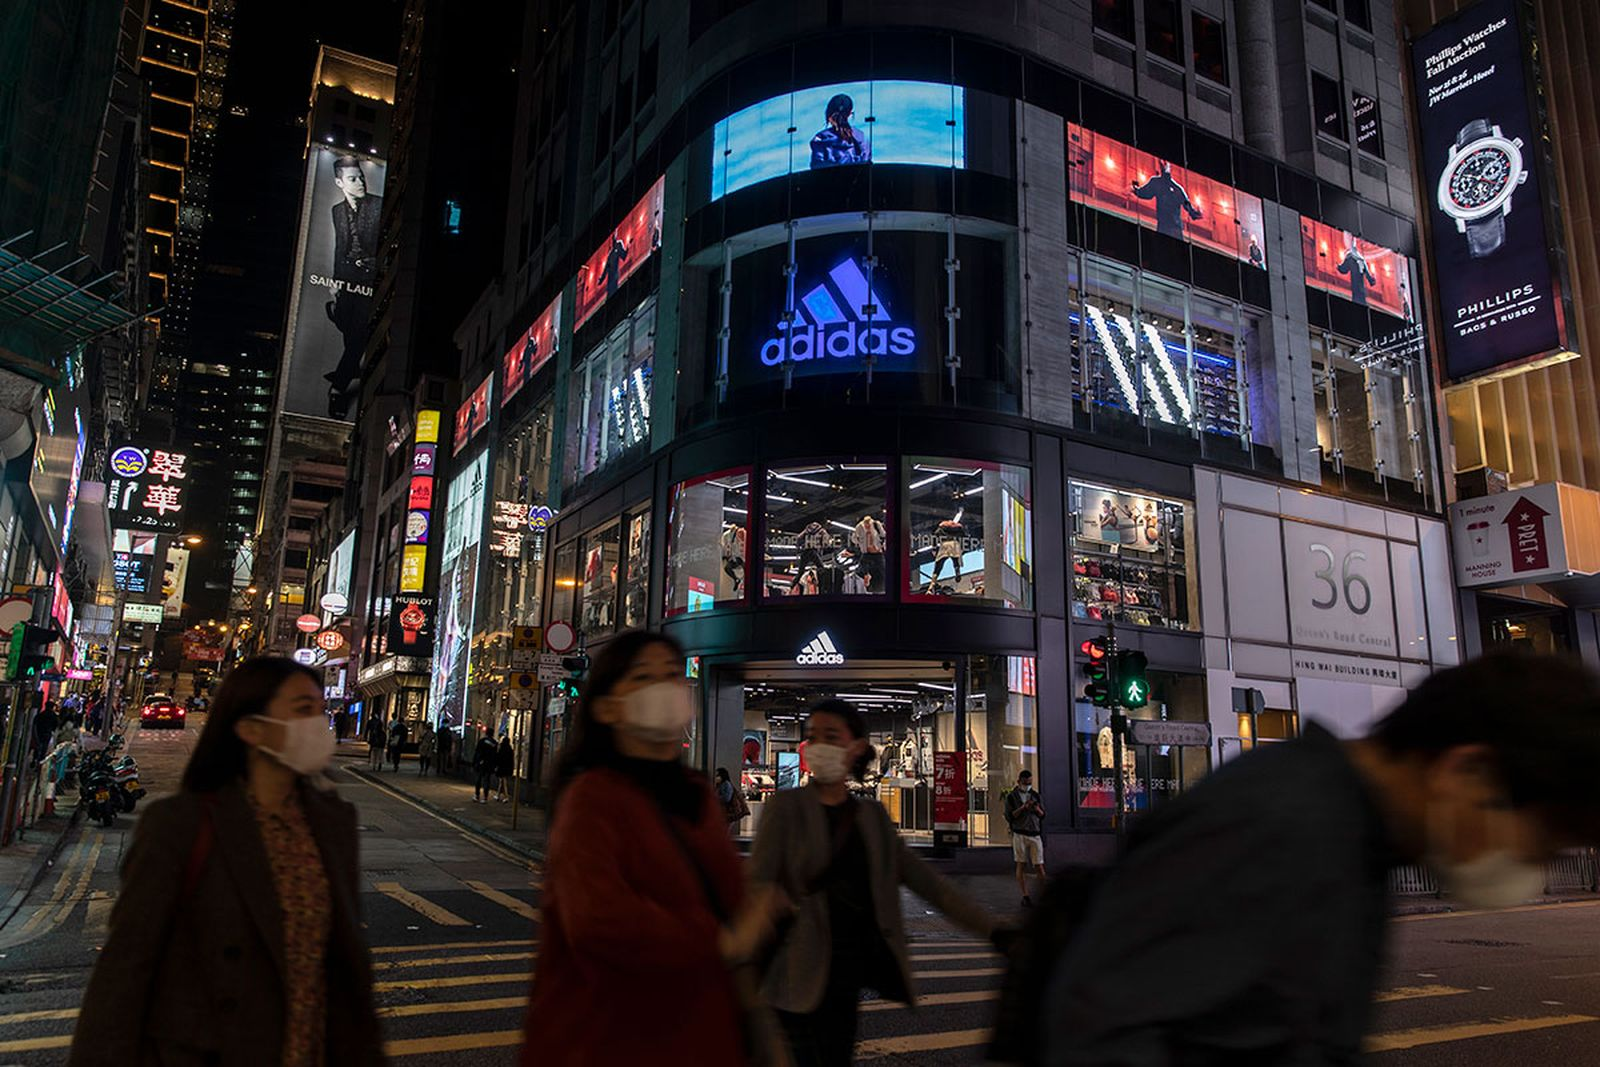 Pedestrians wearing face masks walk past the Adidas store and logo